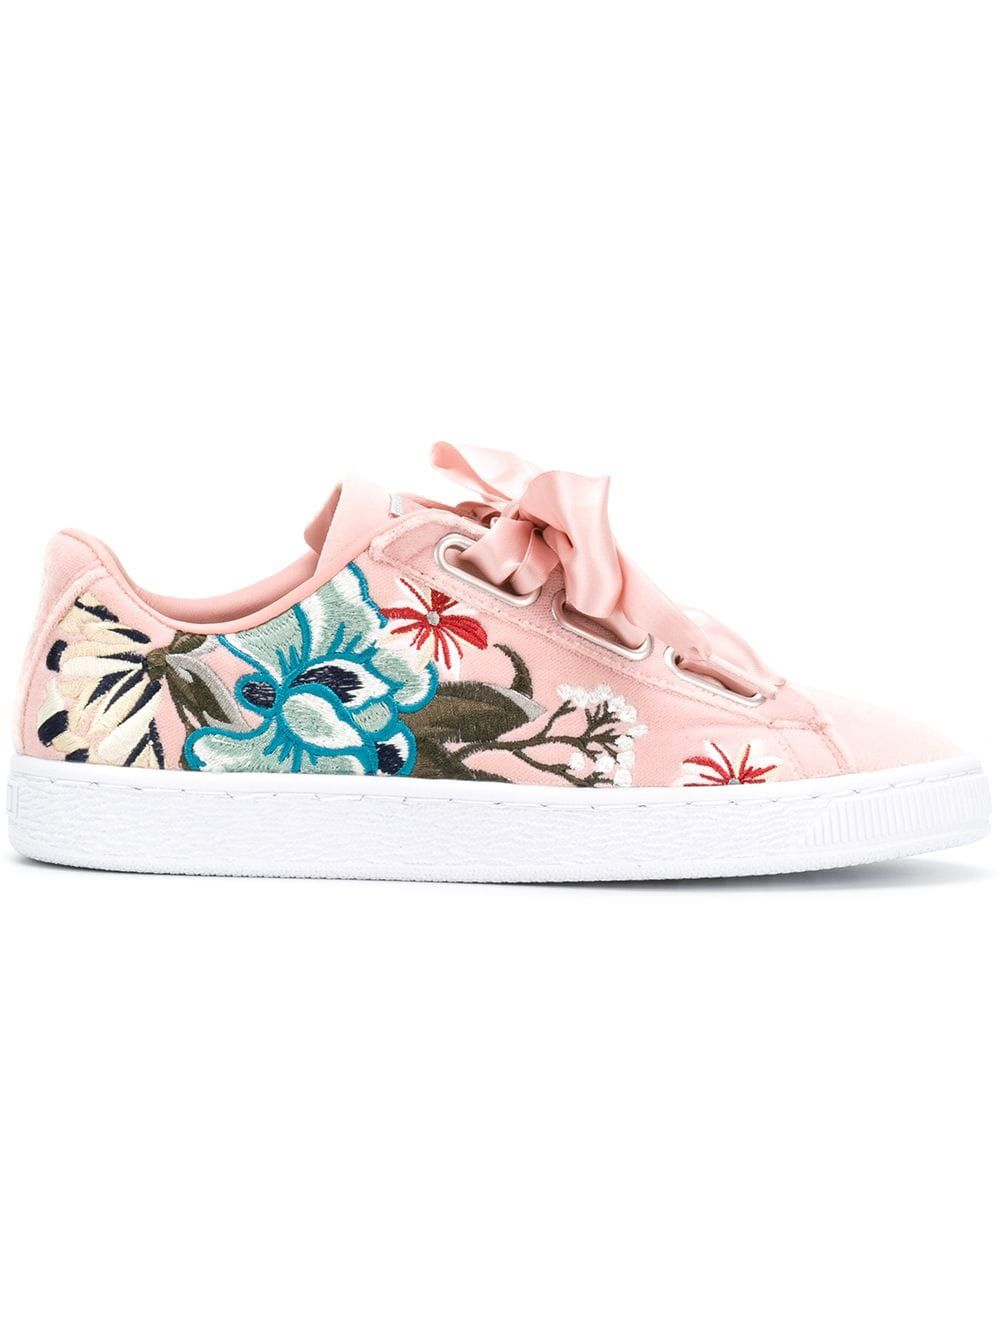 Puma Embroidered Floral Low Top